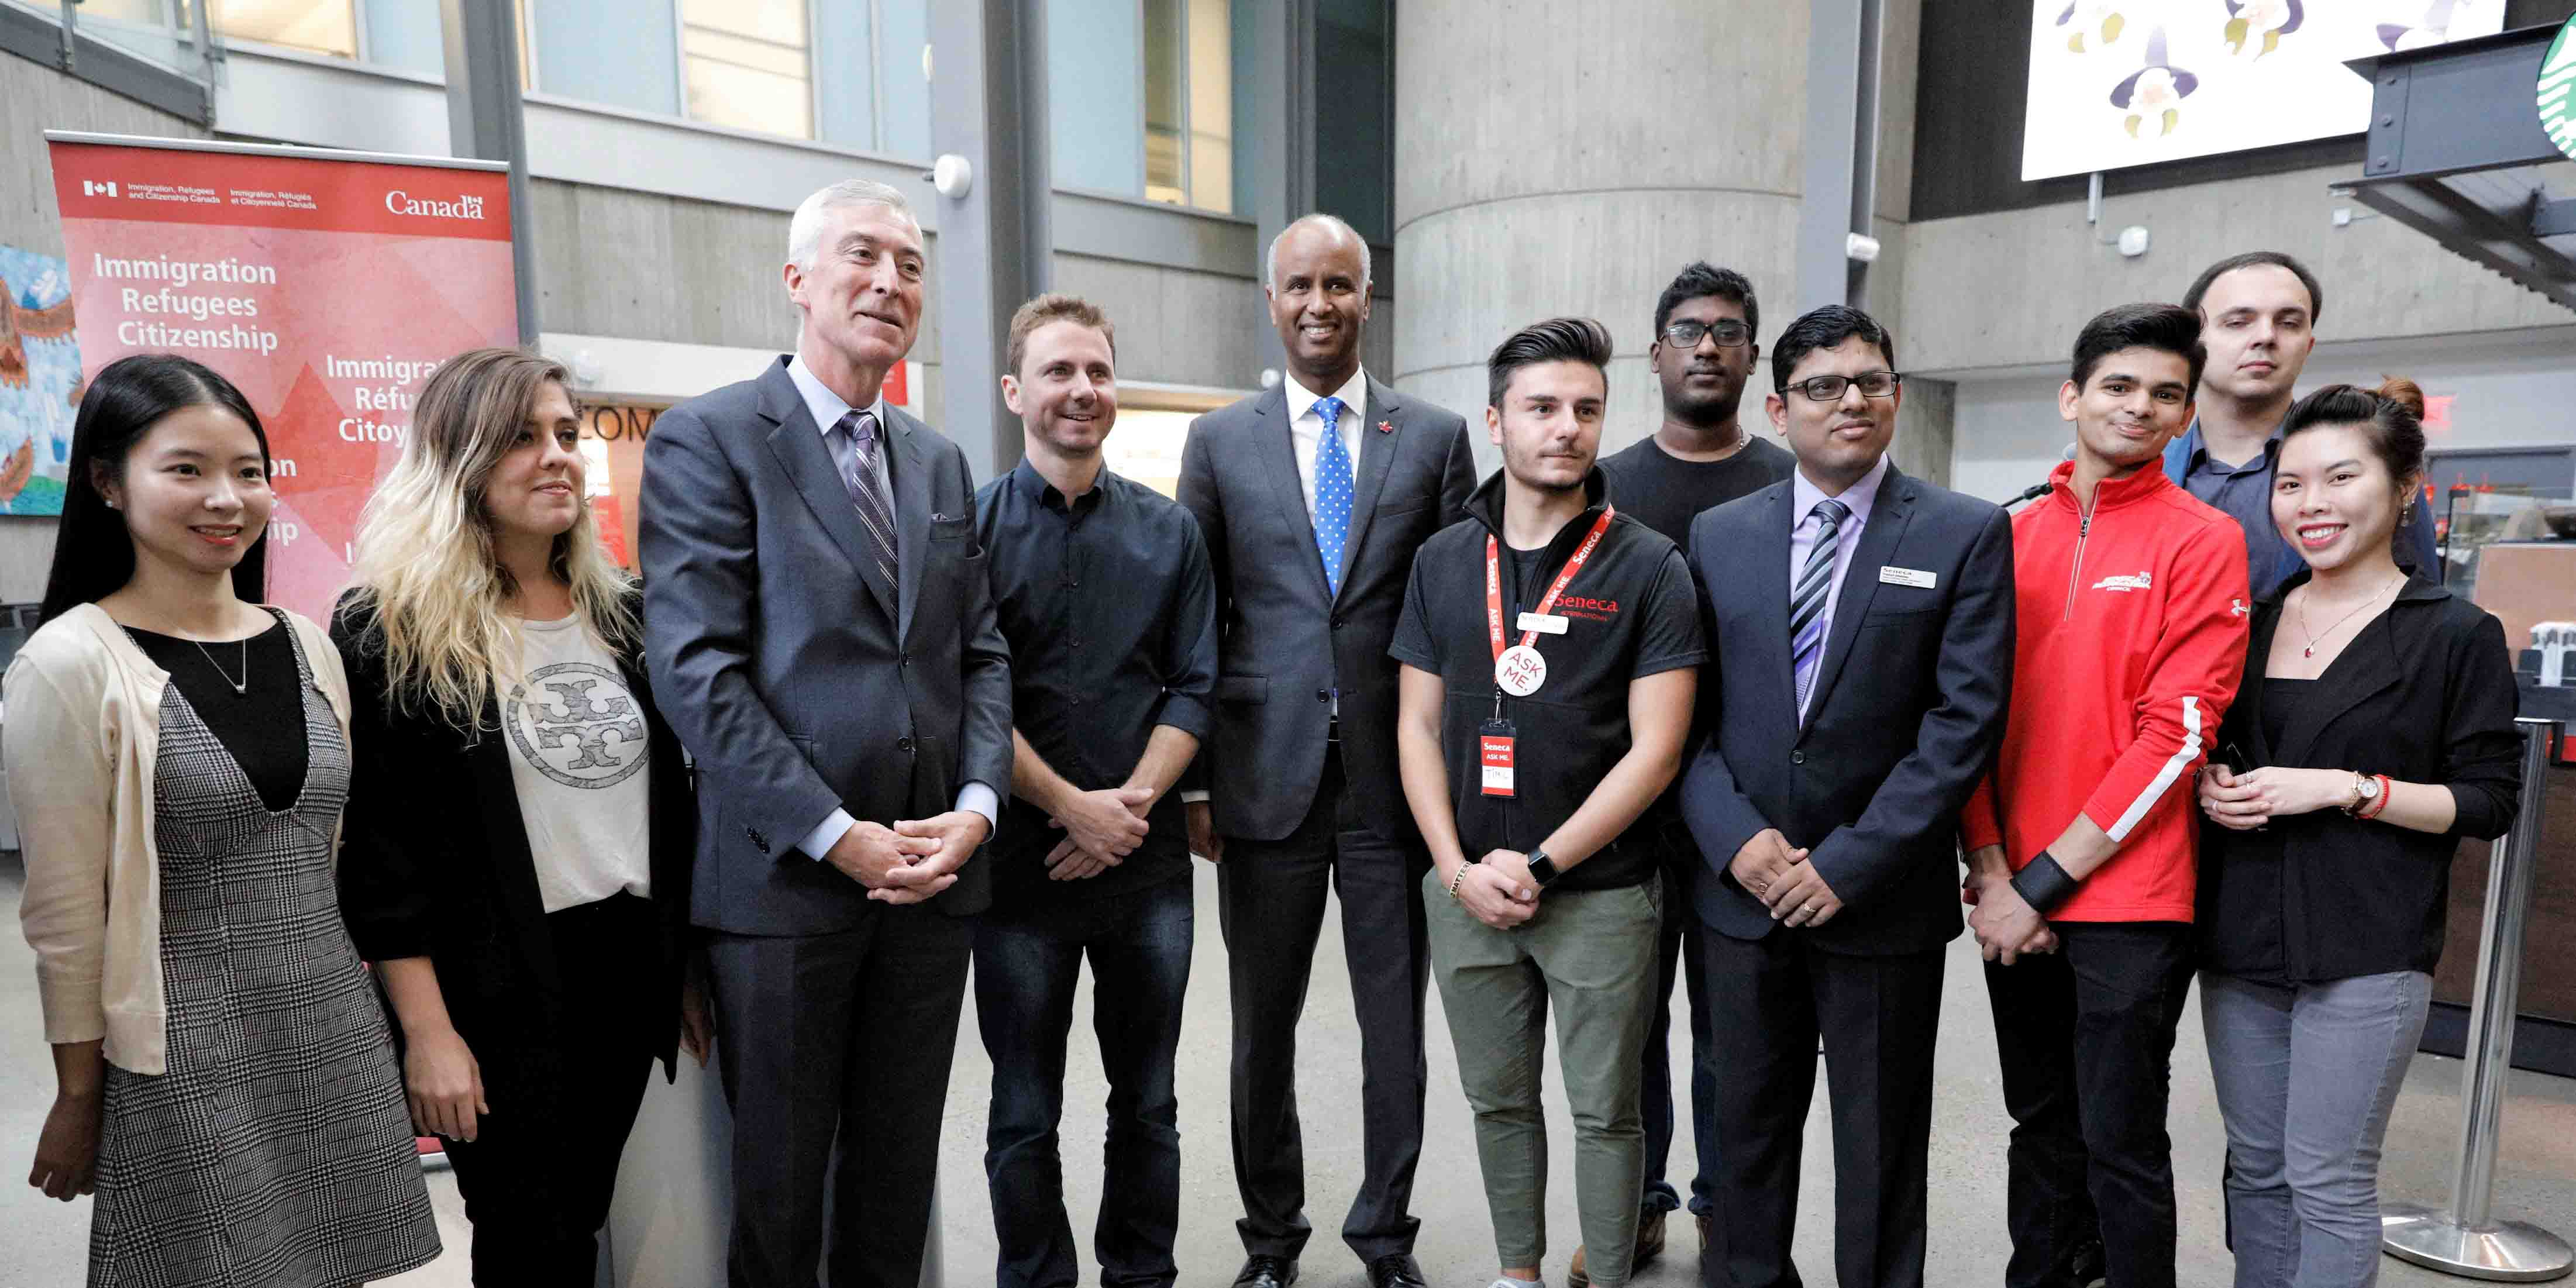 Minister Hussen celebrates Citizenship Week